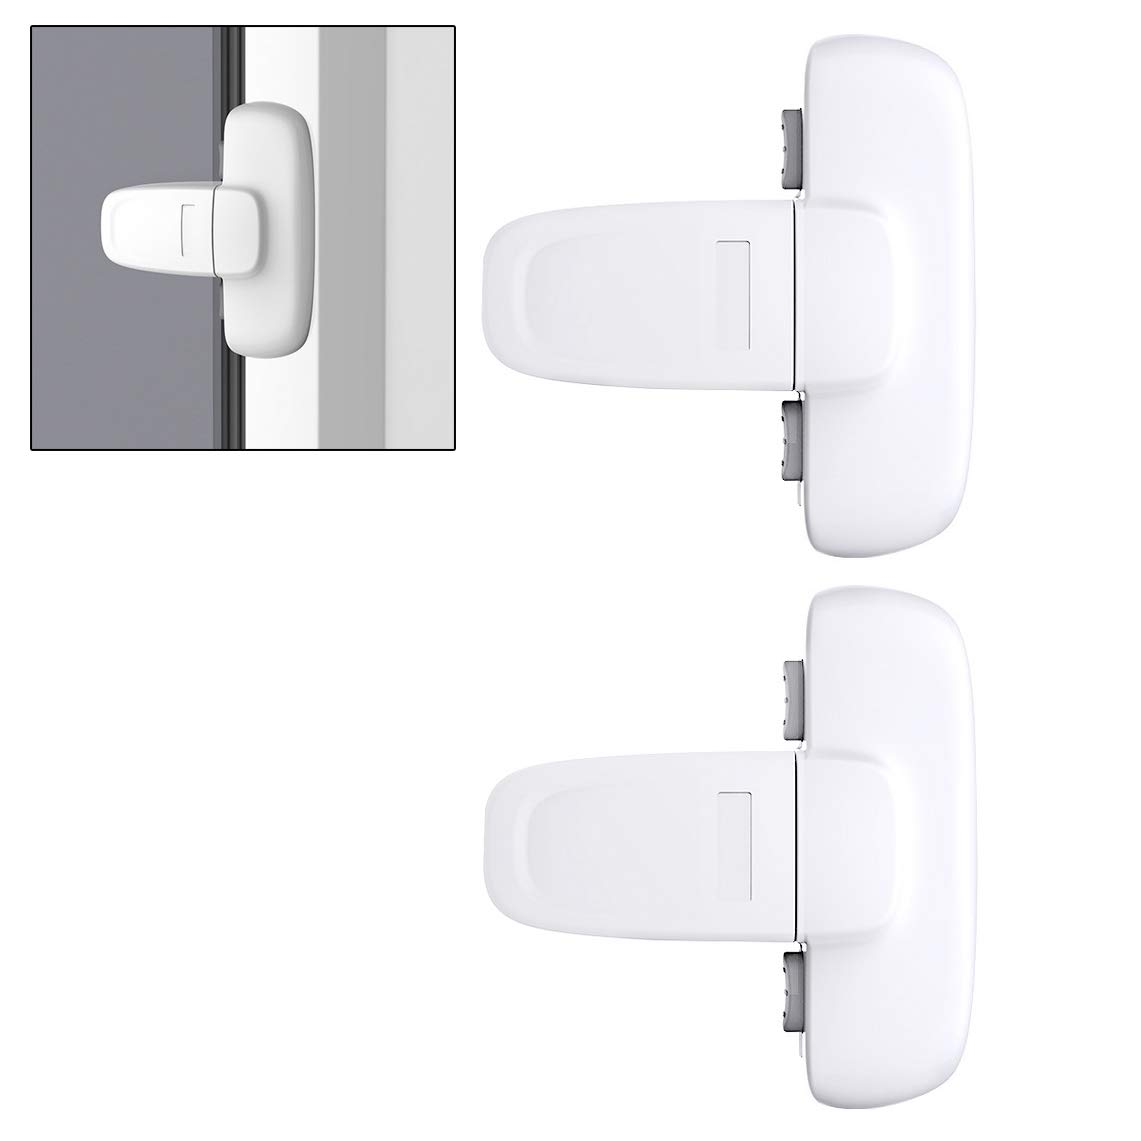 FASHIONROAD Refrigerator Lock, 2 Pack Safety Child Lock Self Adhesive Appliance Lock Fridge Lock for Toddler & Kid no Tools Need or Drill - White